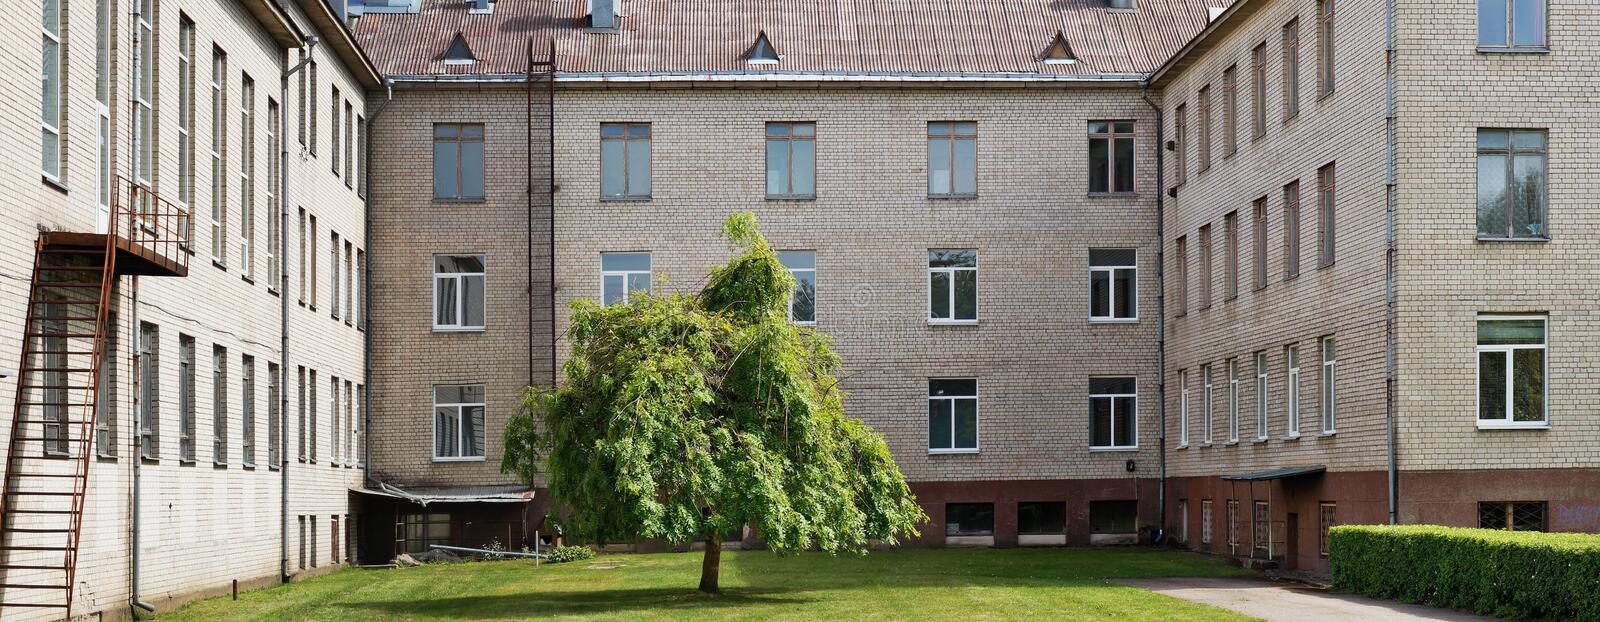 The lonely tree grows on a green lawn of the courtyard of old white brick mass production school. Panoramic collage from several summer outdoor photos stock photos